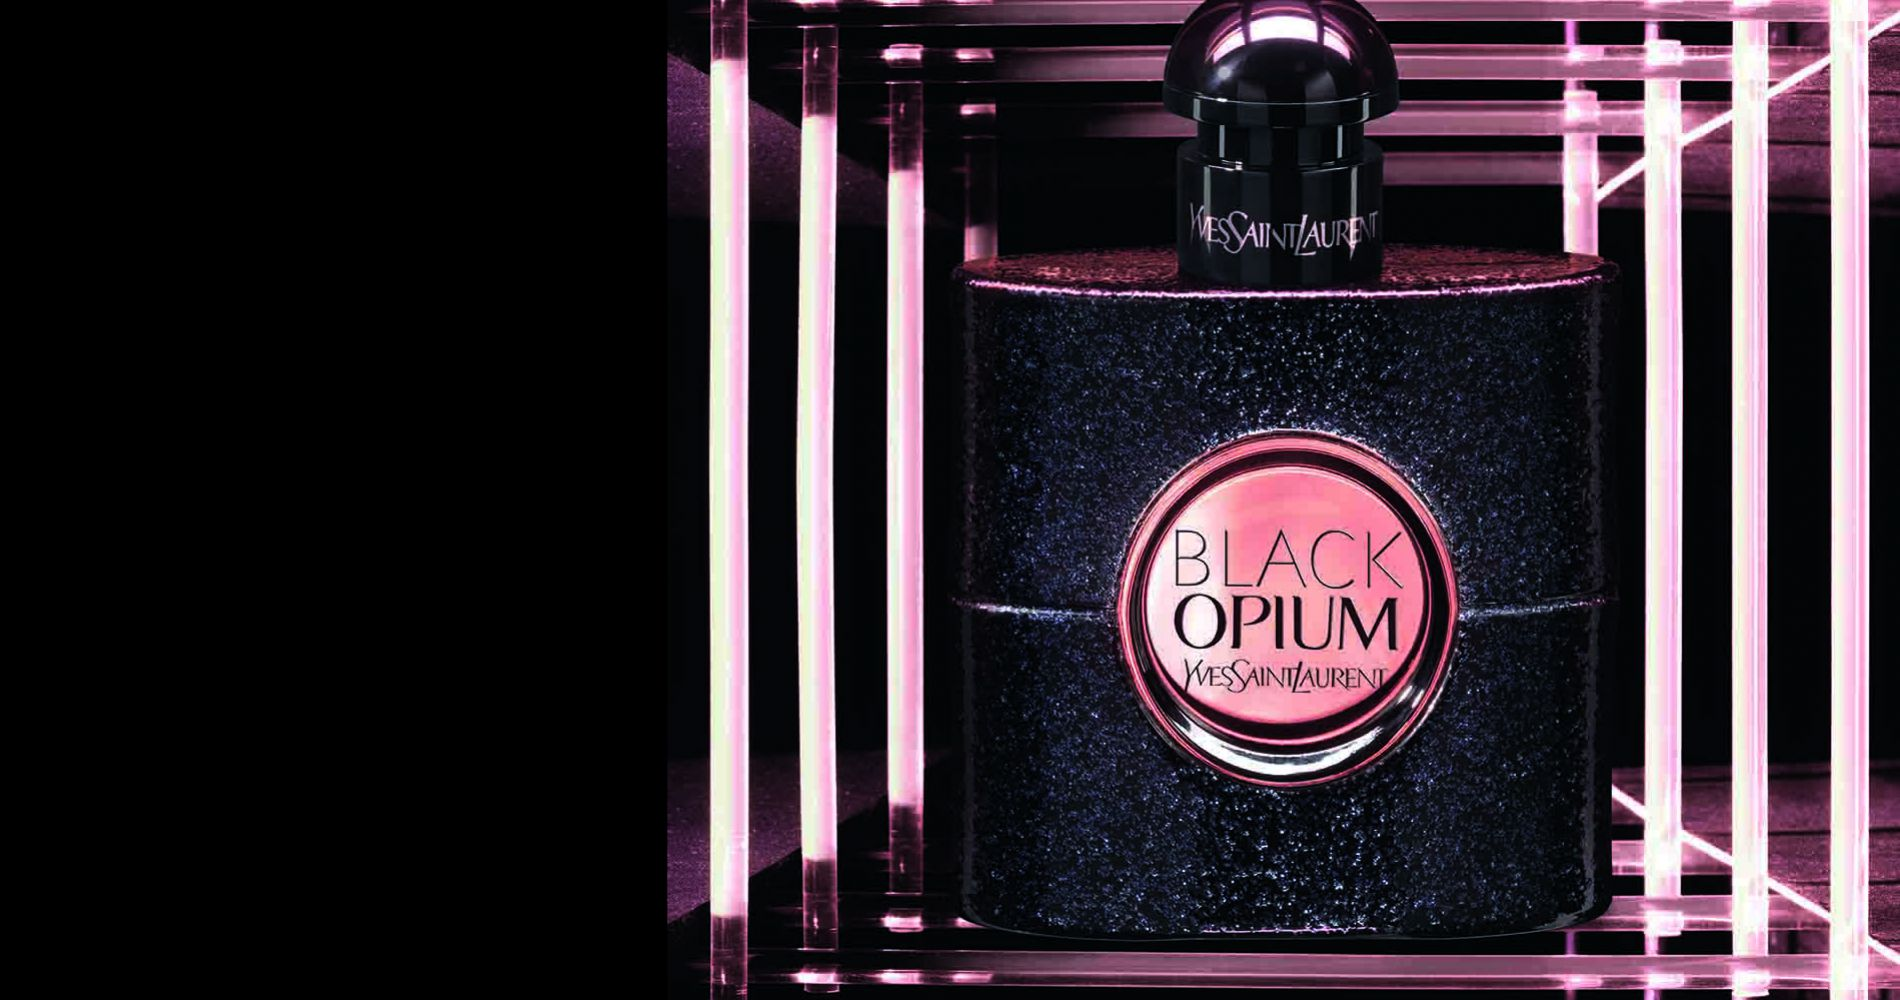 BLACK OPIUM d'Yves Saint Laurent, cadeau addictif